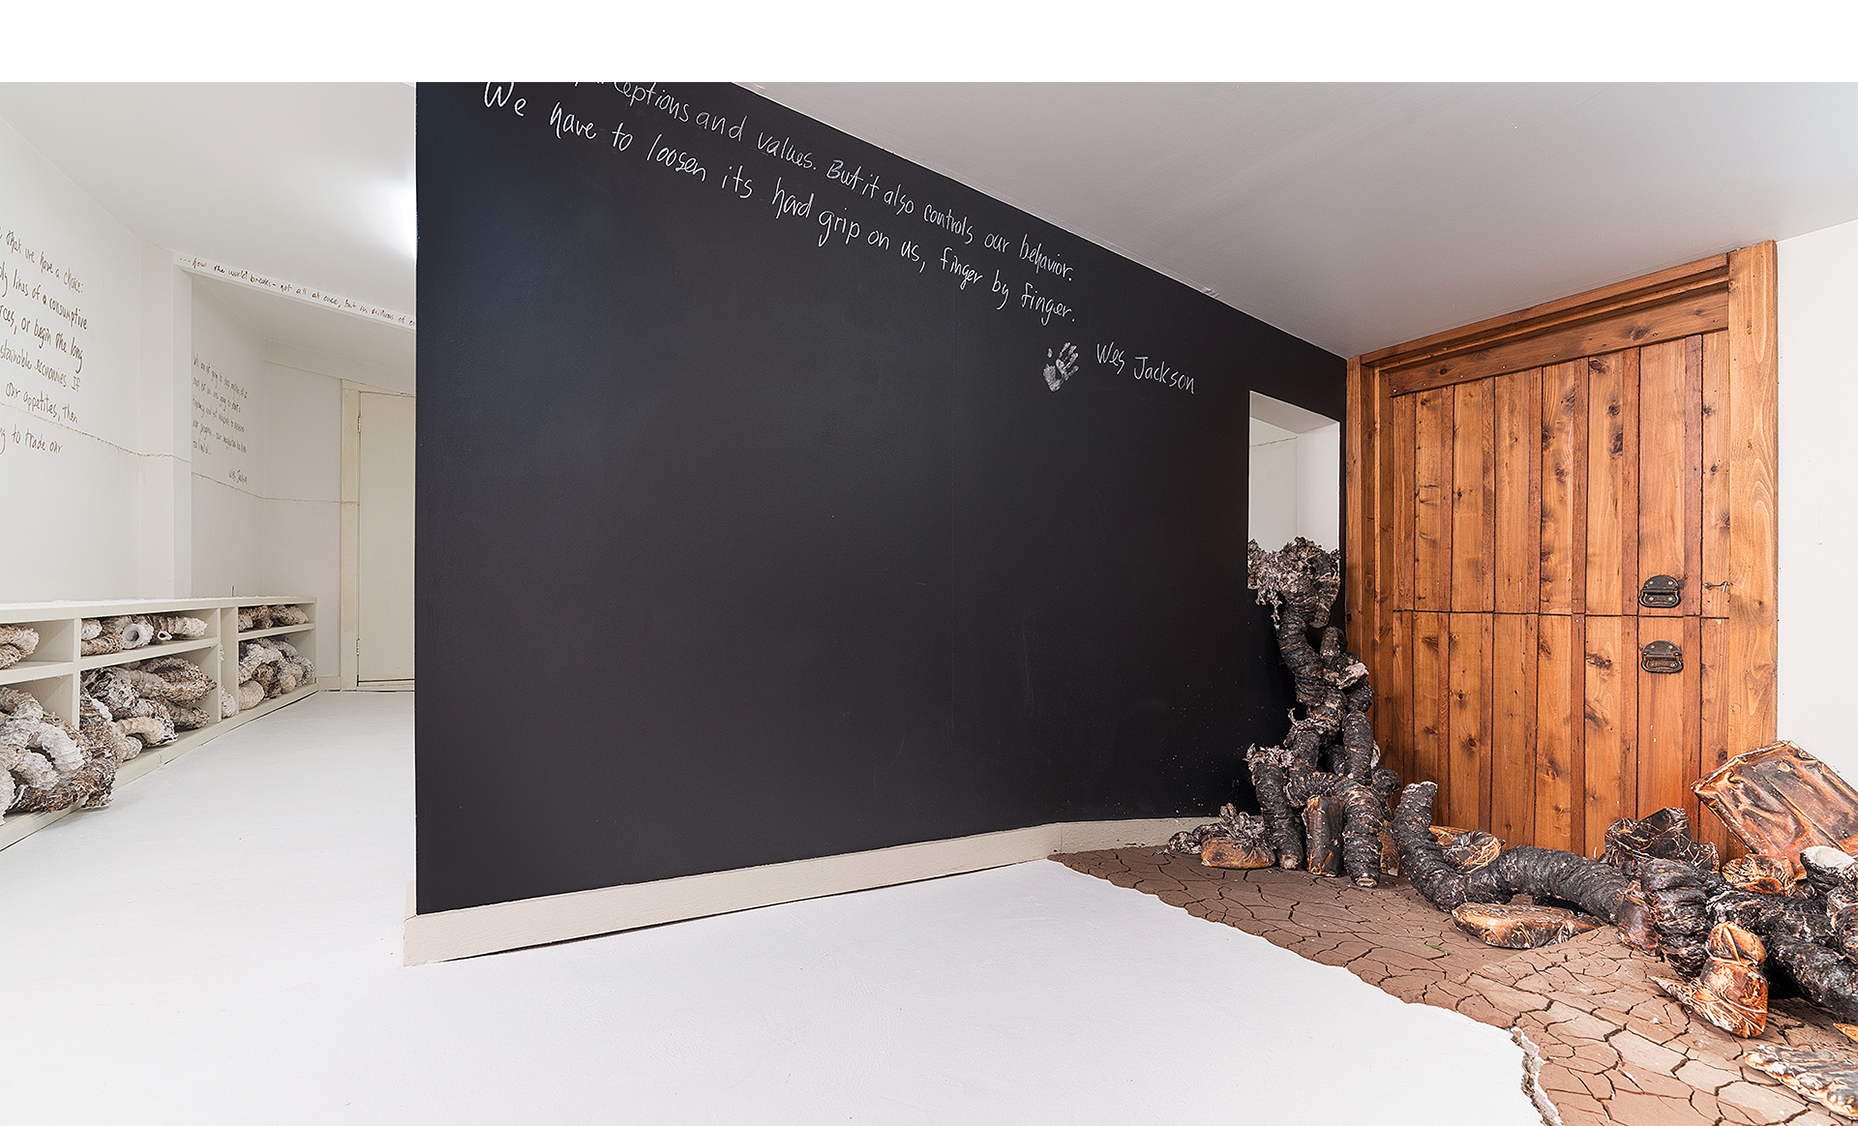 """Installation detail of charred organic forms """"climbing"""" through window, cracked earth and participatory blackboard wall with text by Wes Jackson."""